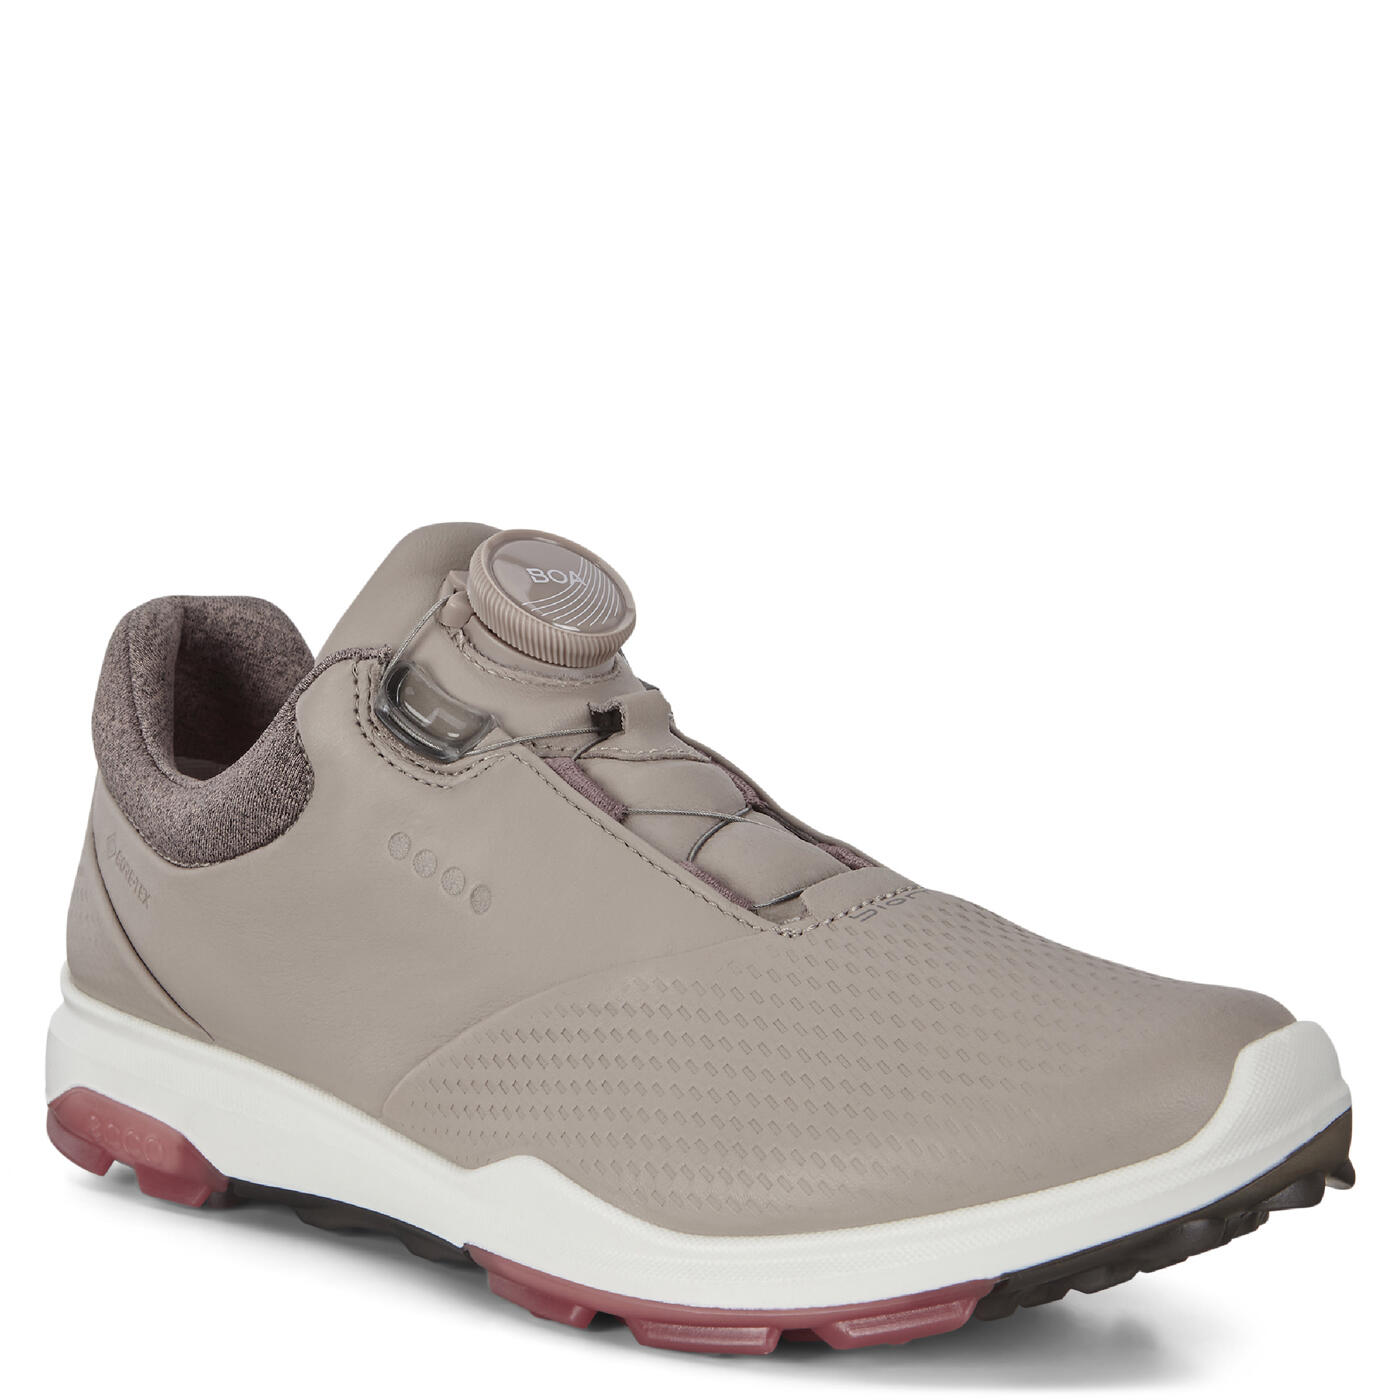 ECCO Women's Biom Hybrid 3 BOA Golf Shoe